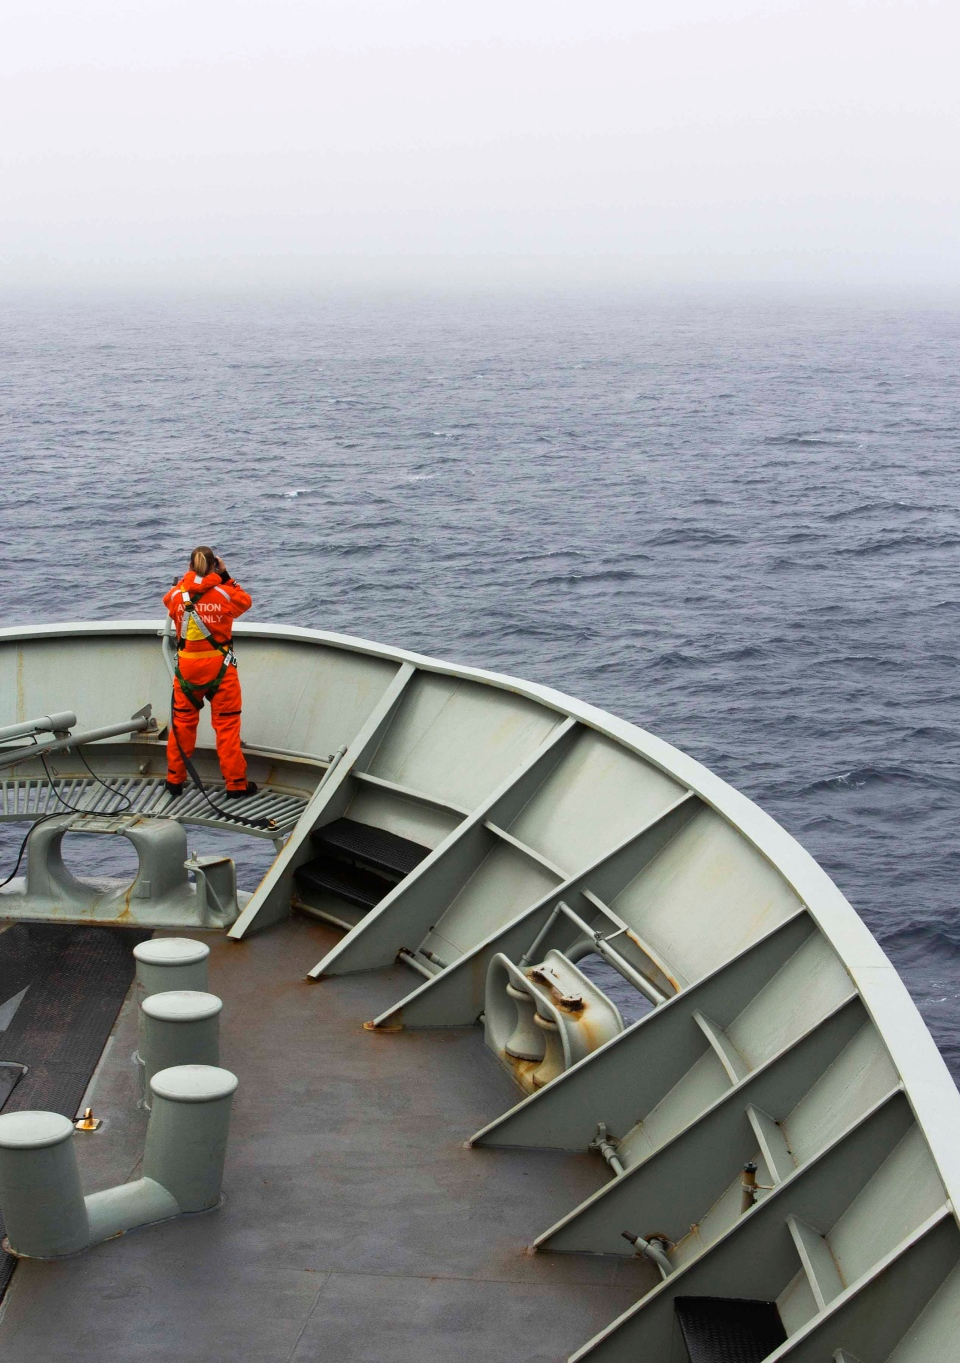 A lookout is stationed on bow of HMAS Success during the search in the southern Indian Ocean for signs of the missing Malaysia Airlines Flight MH370. (Australian Department of Defence / James Whittle)